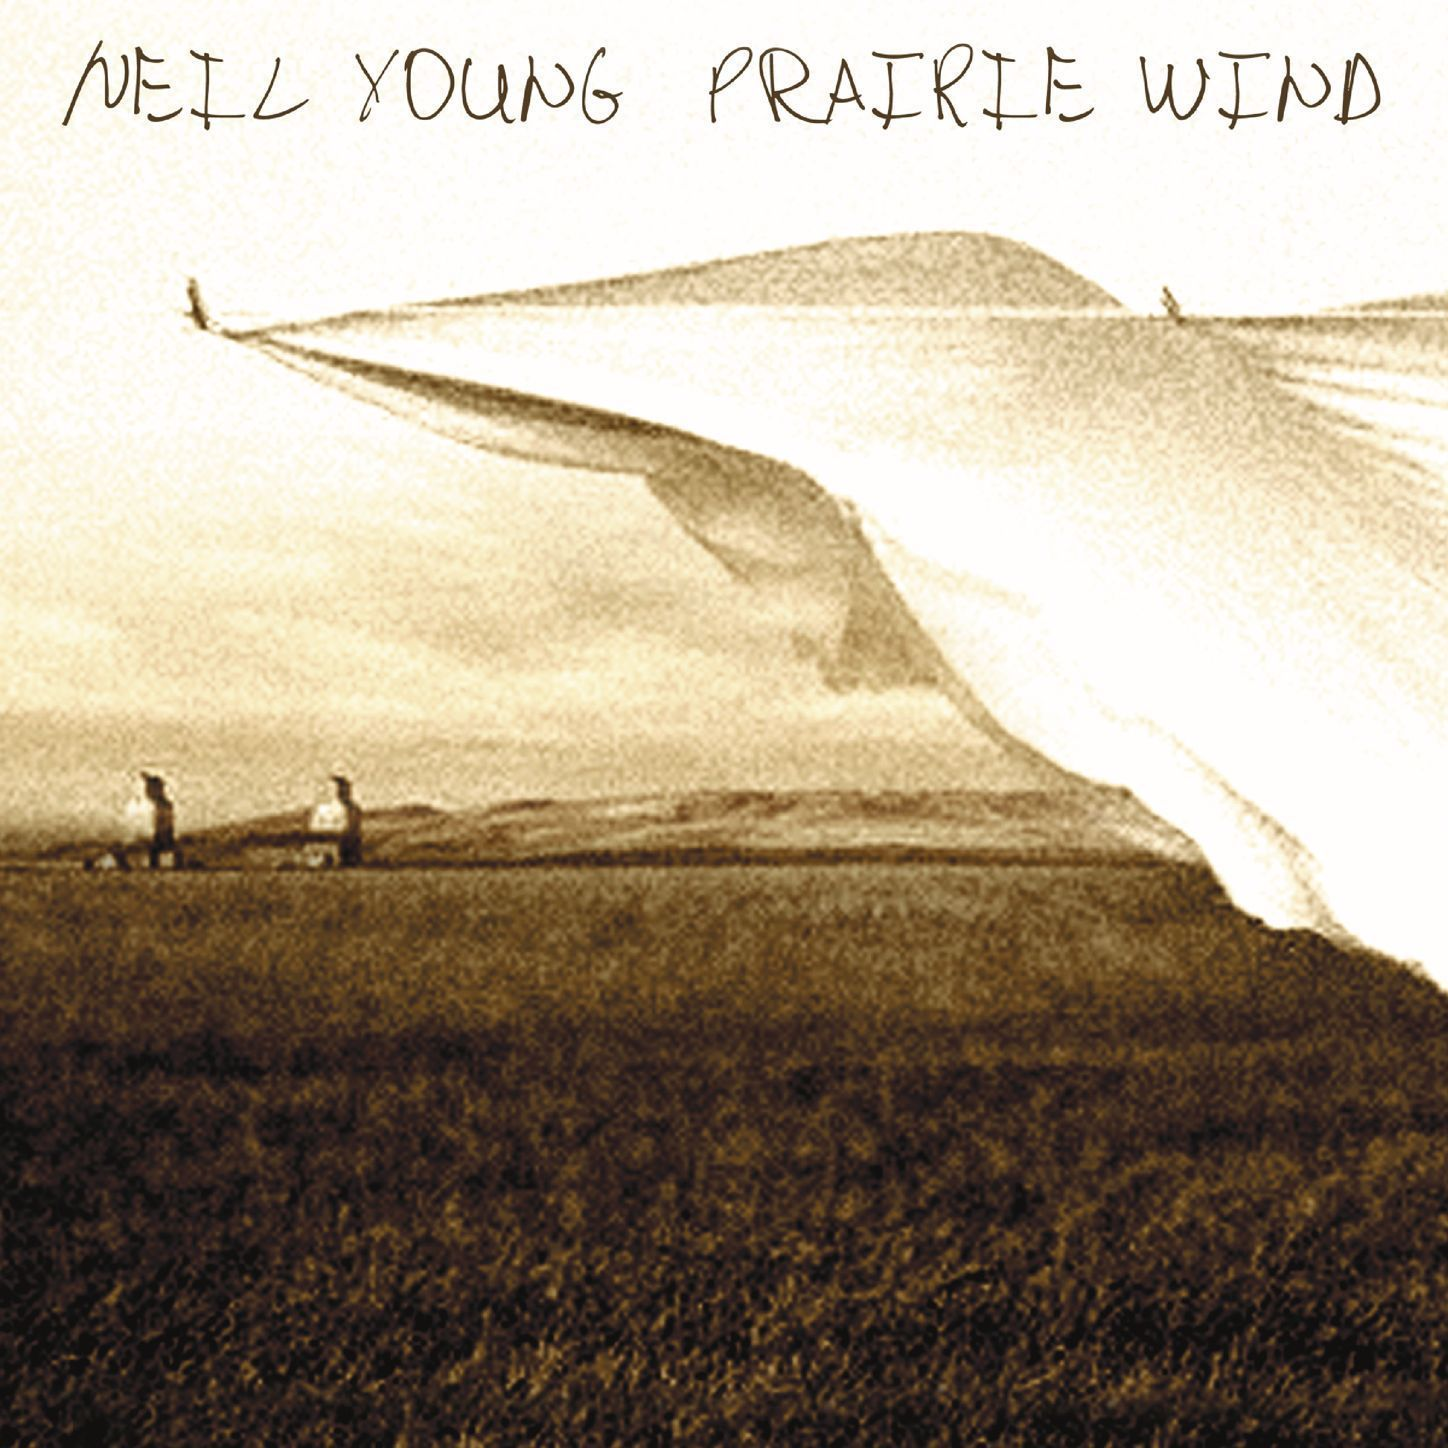 Prairie Wind by Neil Young - Music Charts